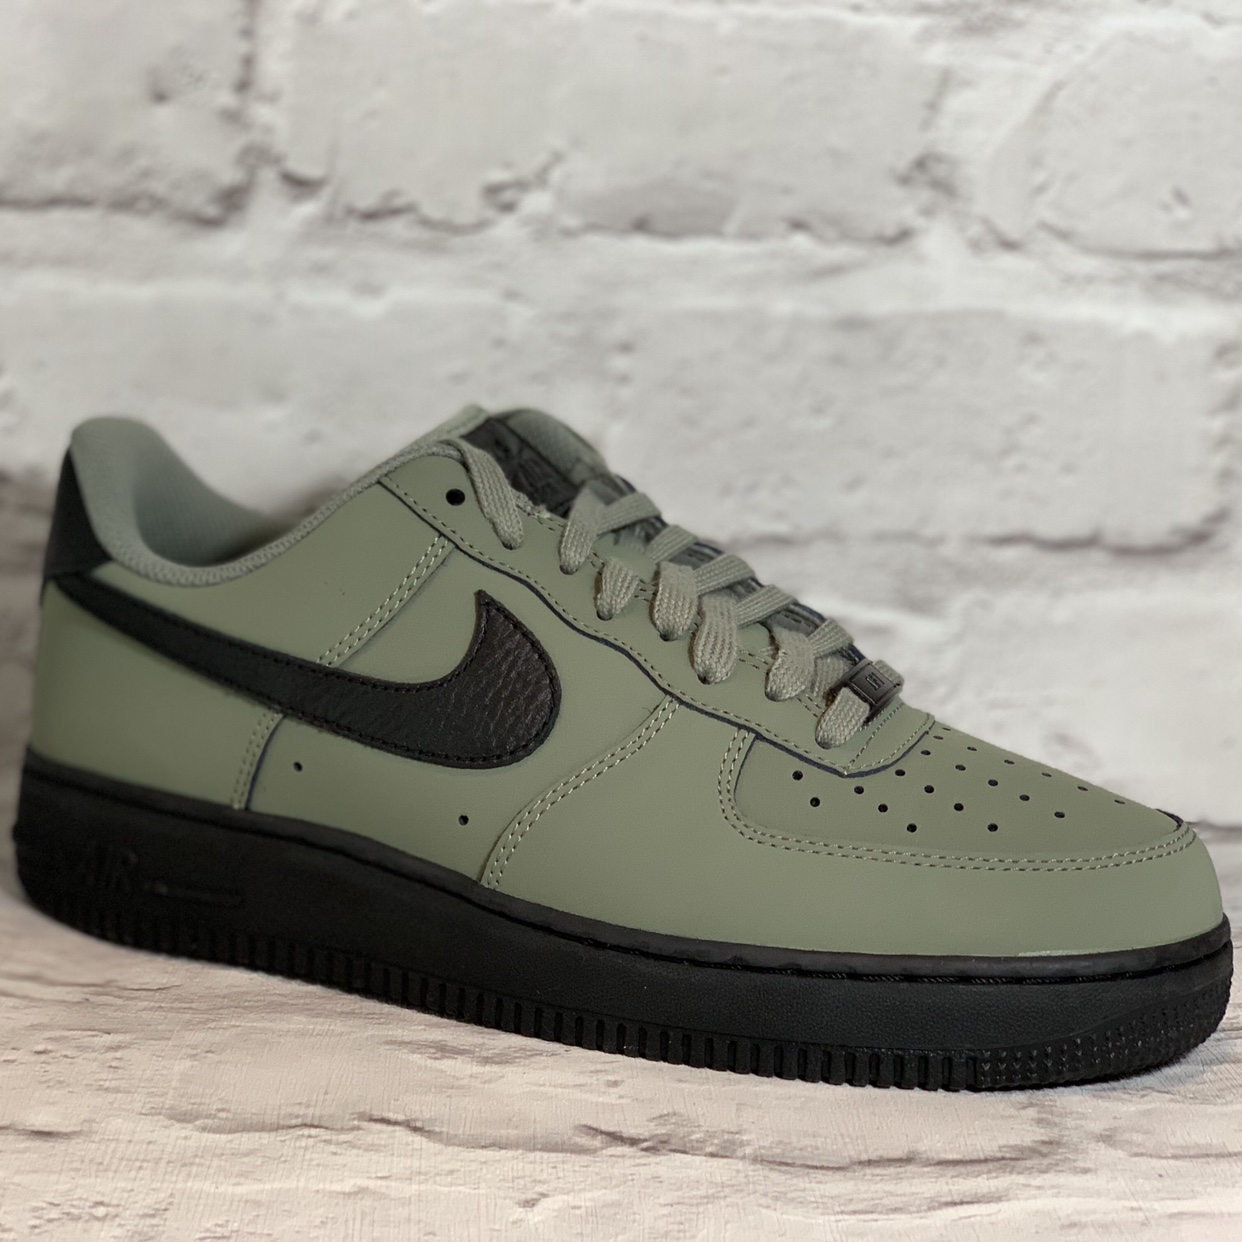 Nike Air Force 1 '07 greenblack UK Size 7 Available Depop